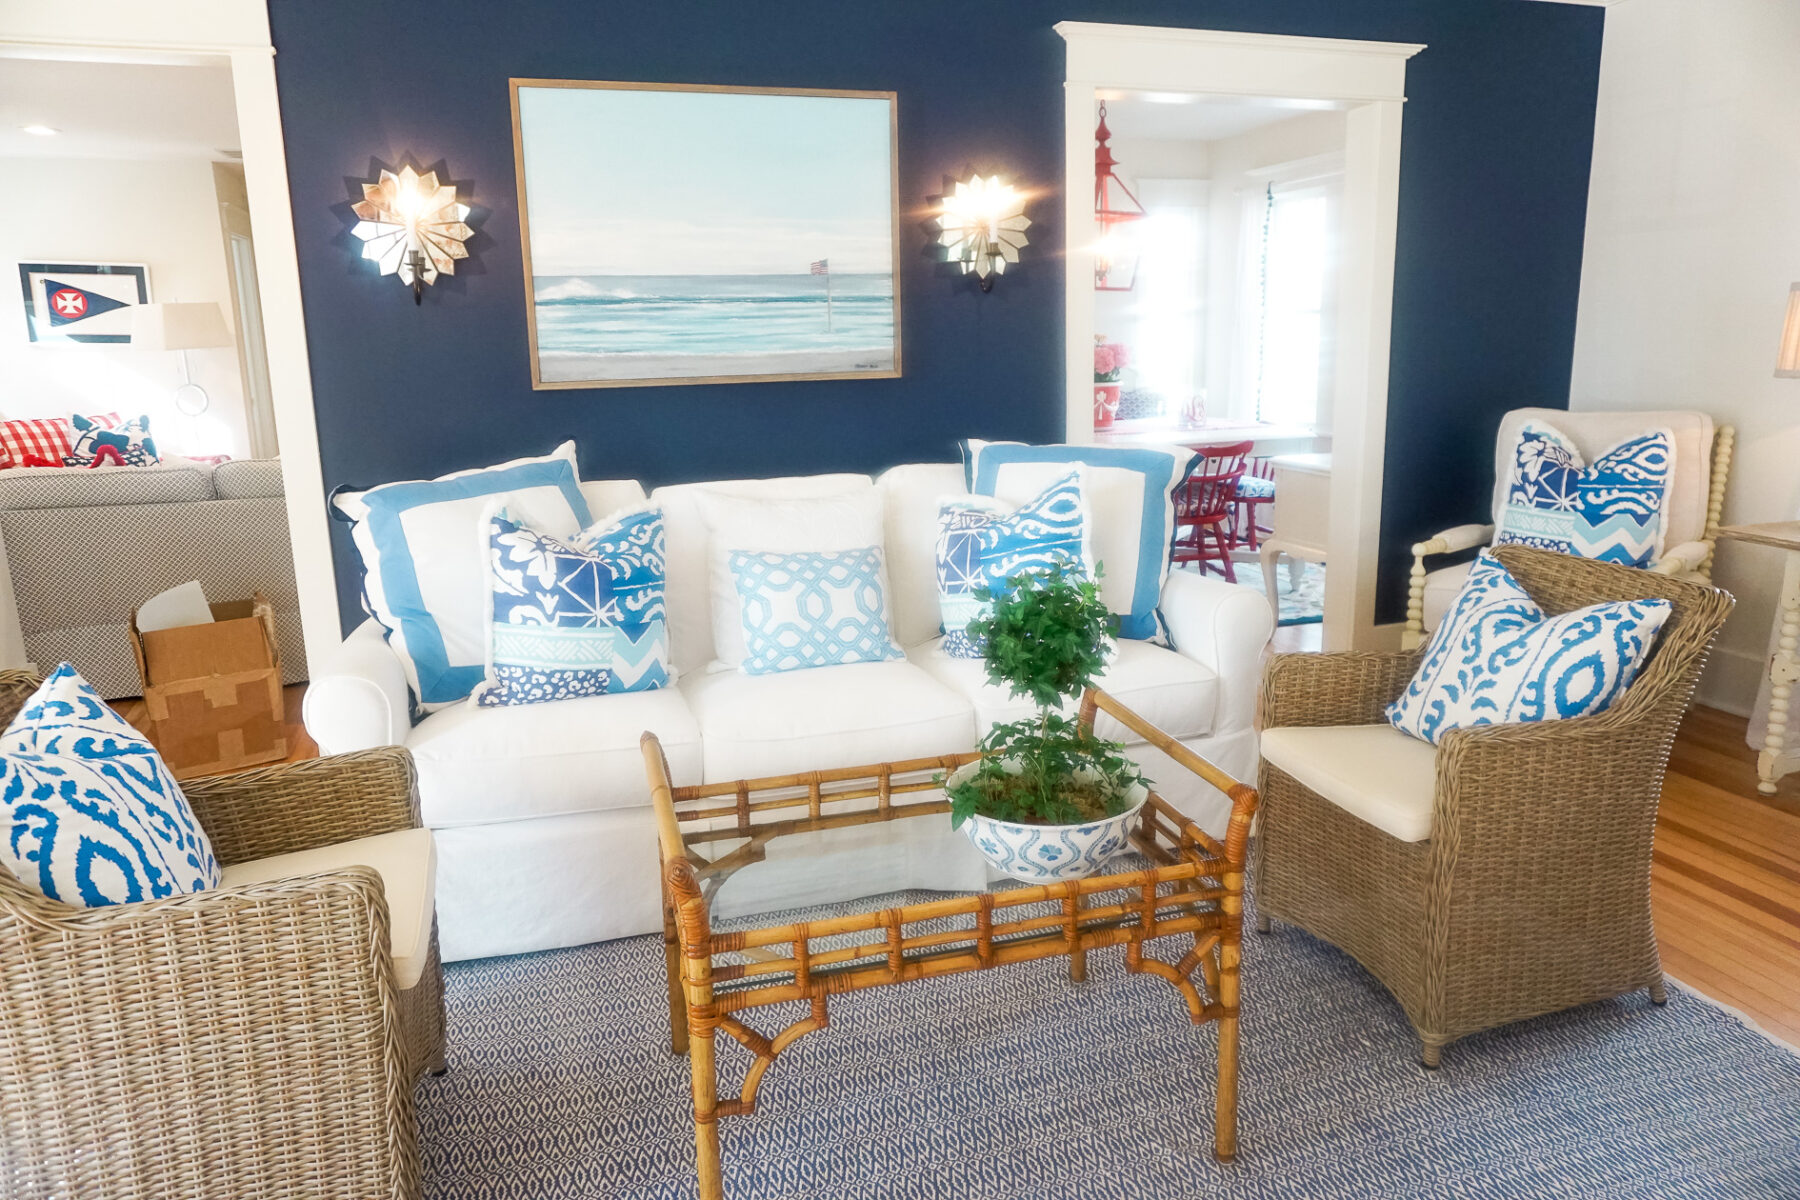 Coastal Living Beach House red white and blue decorations in living and family room on Long Beach Island